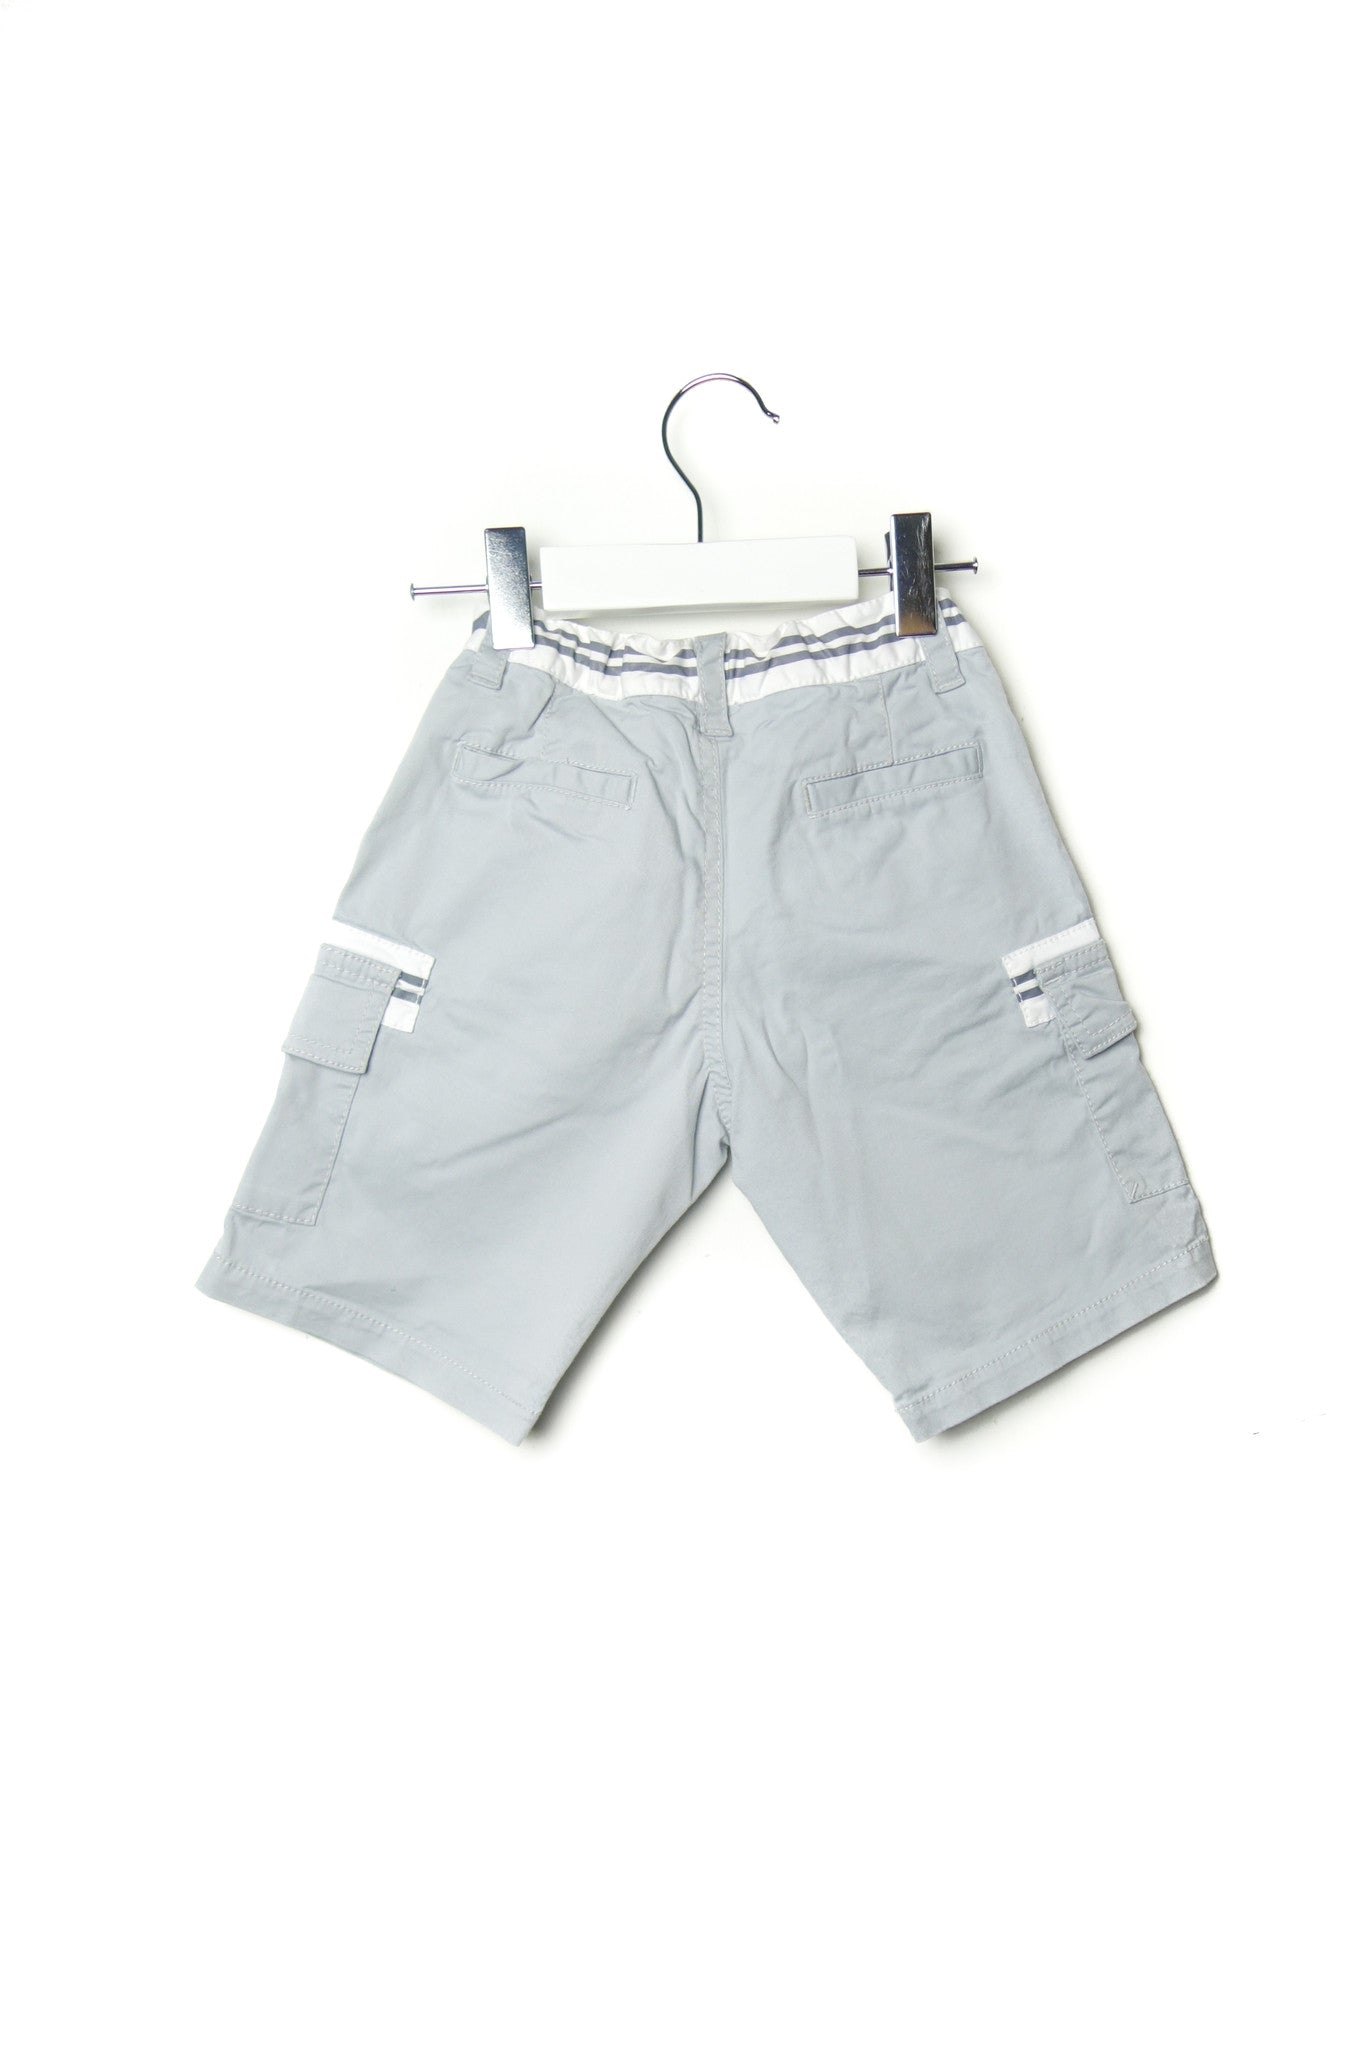 10001848 I Pinco Pallino Kids~Shorts 4T at Retykle